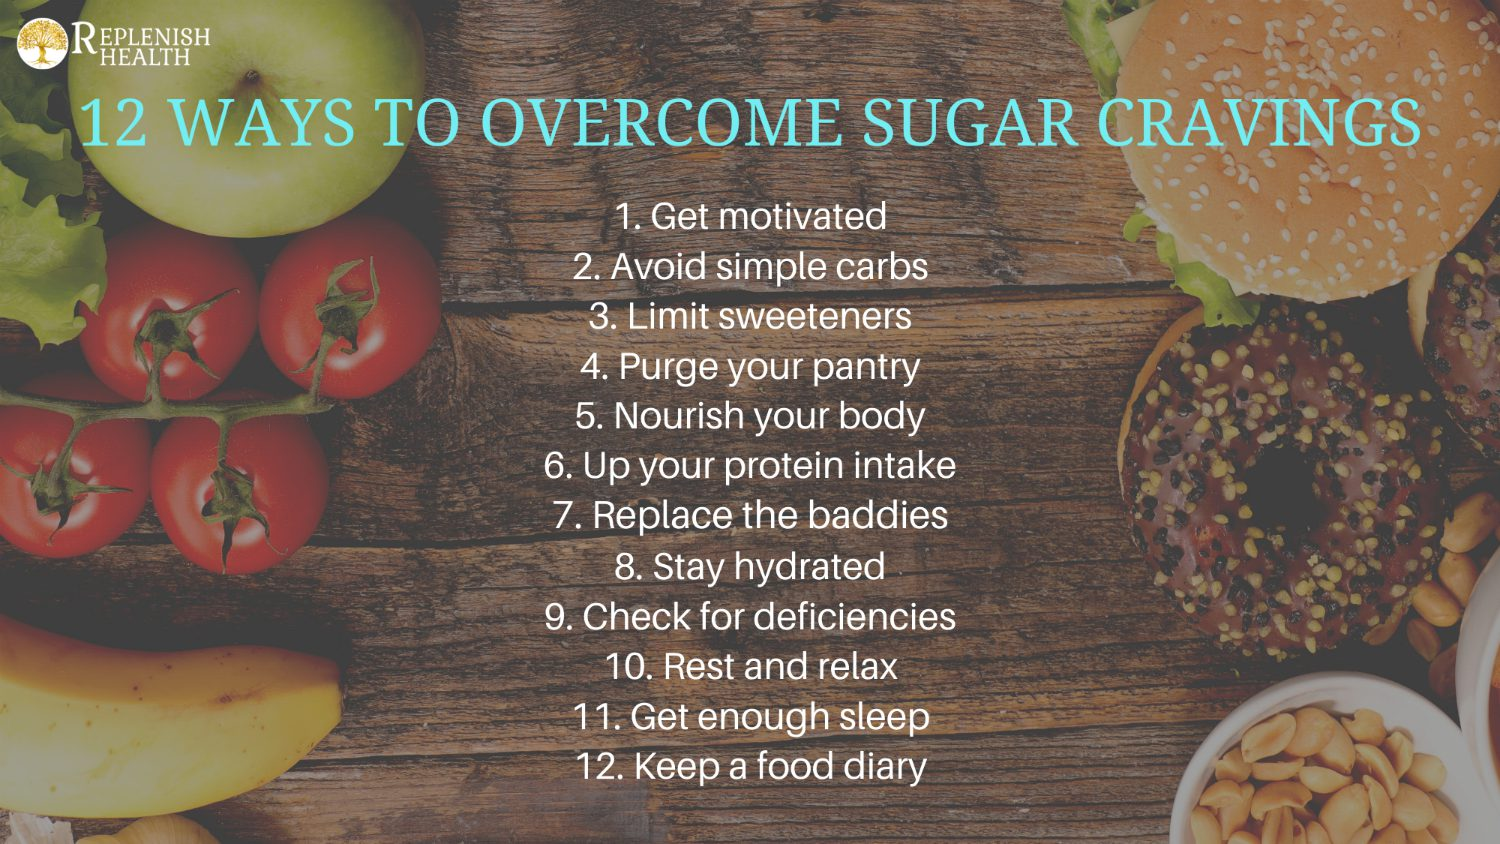 An image of 12 Ways To Overcome Sugar Cravings